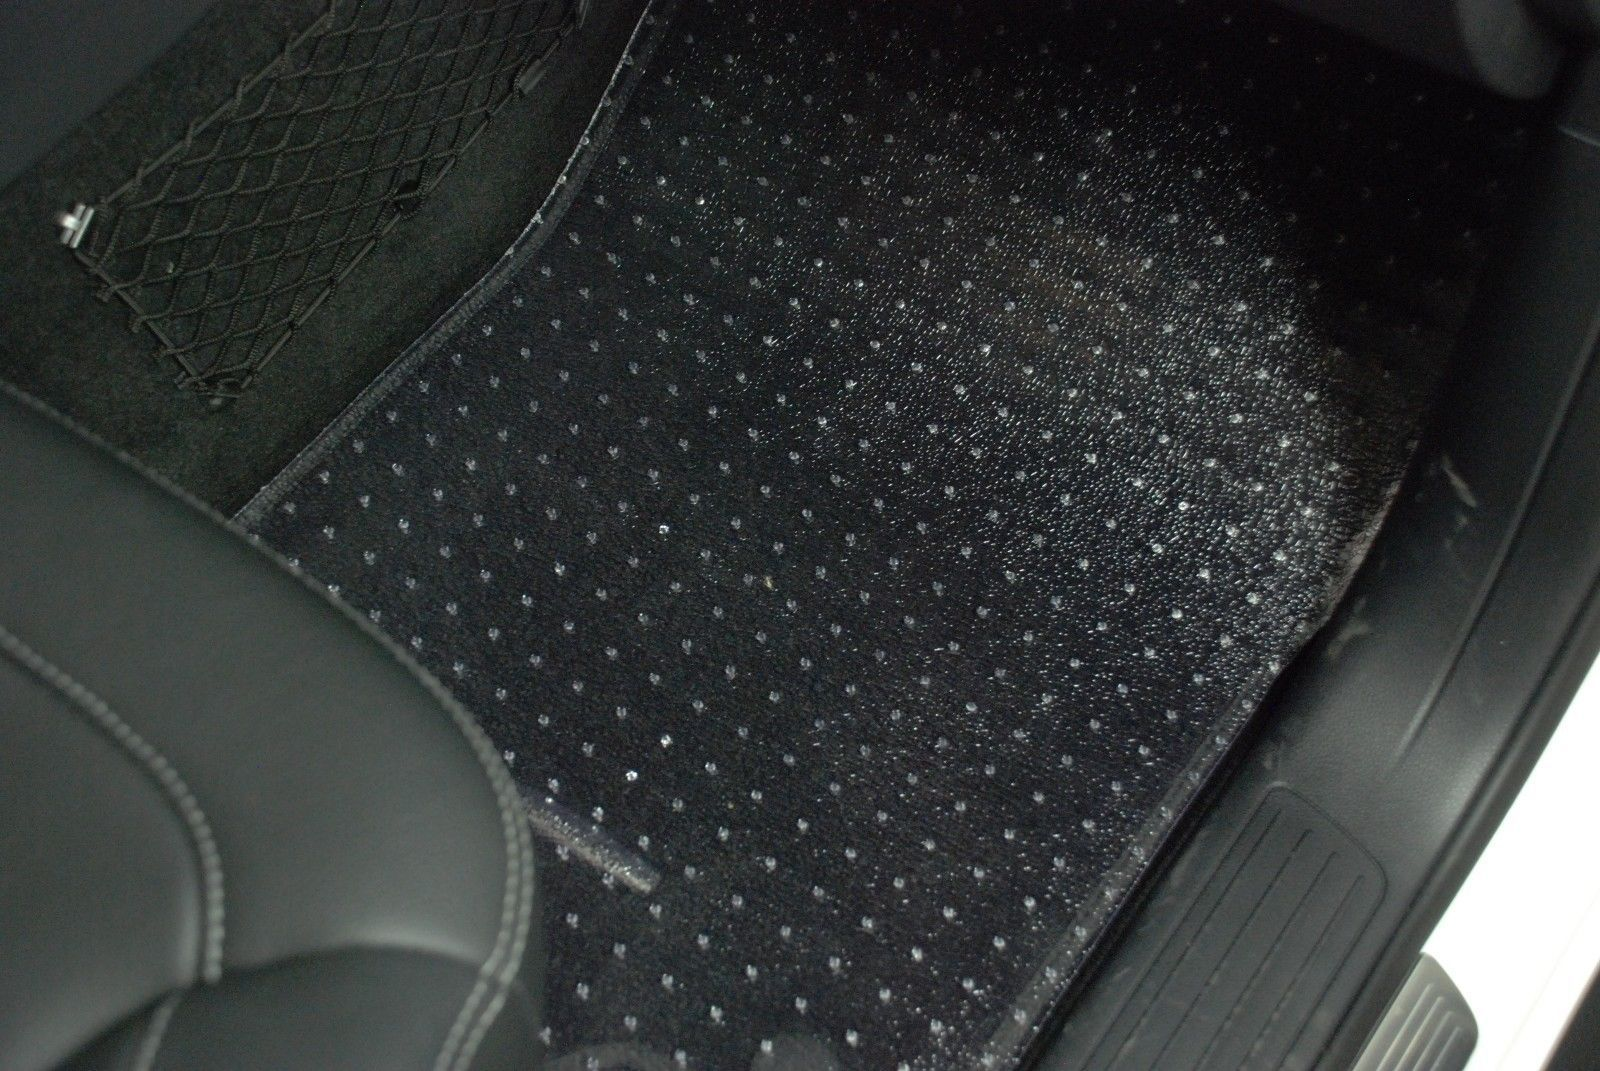 toyota camry 2015 heavy duty clear floor mats car auto protector interior clean floor mats. Black Bedroom Furniture Sets. Home Design Ideas